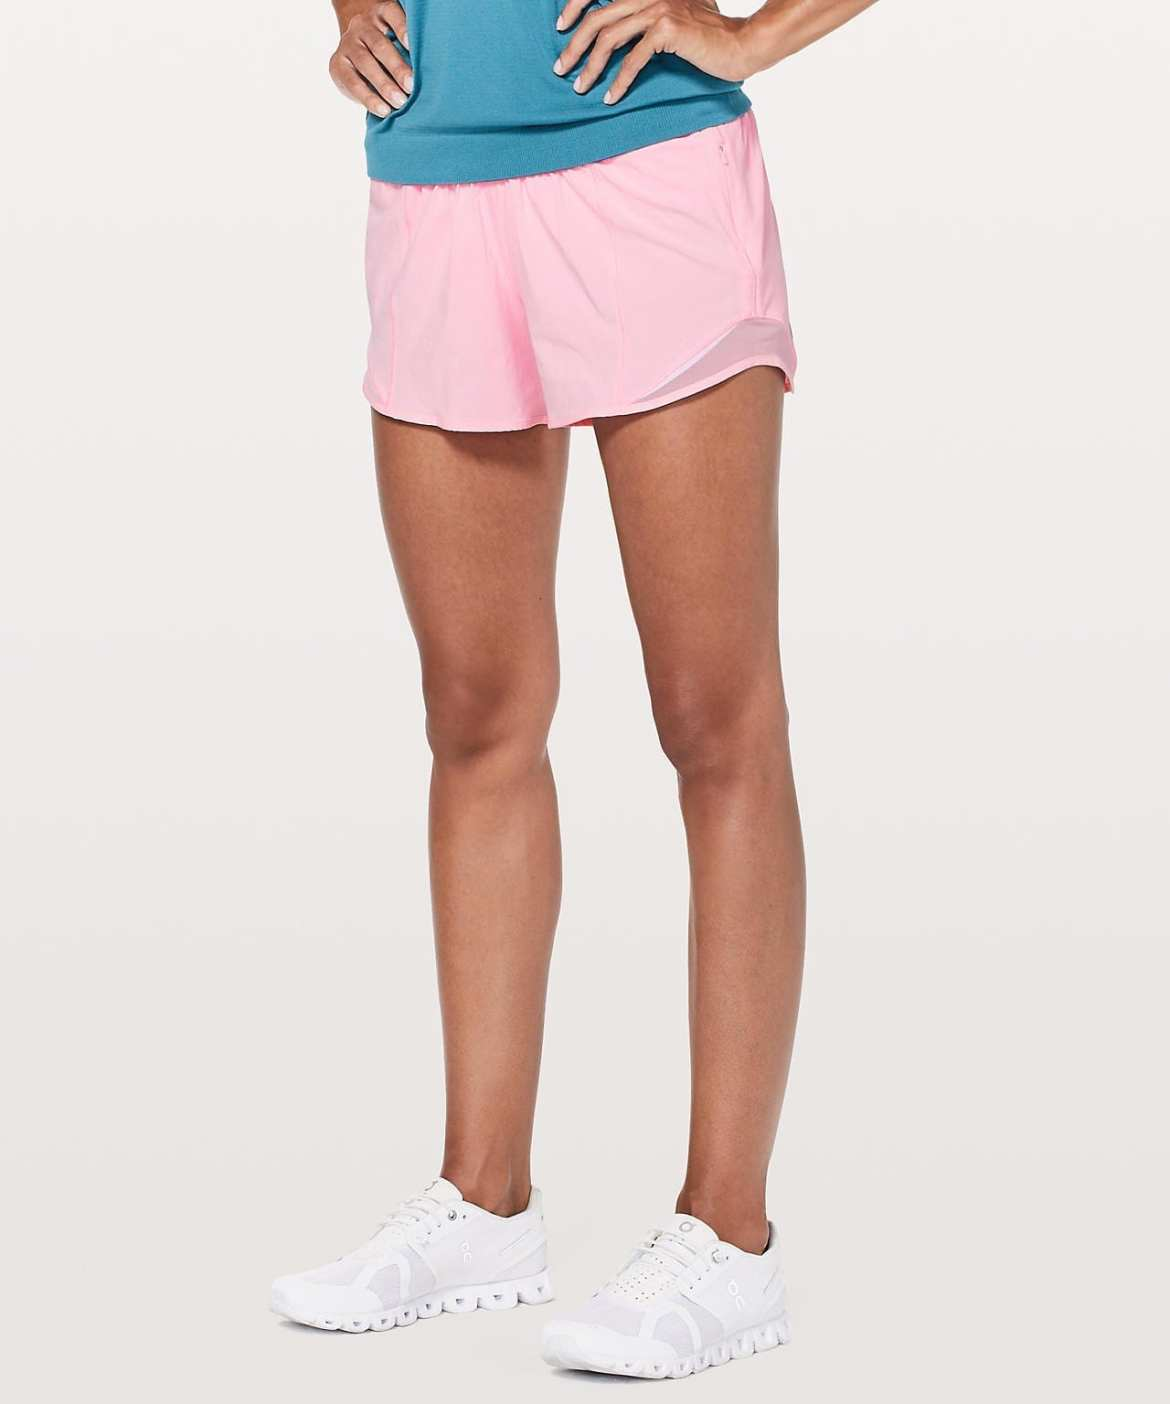 Hotty Hot Short II Long Miami Pink